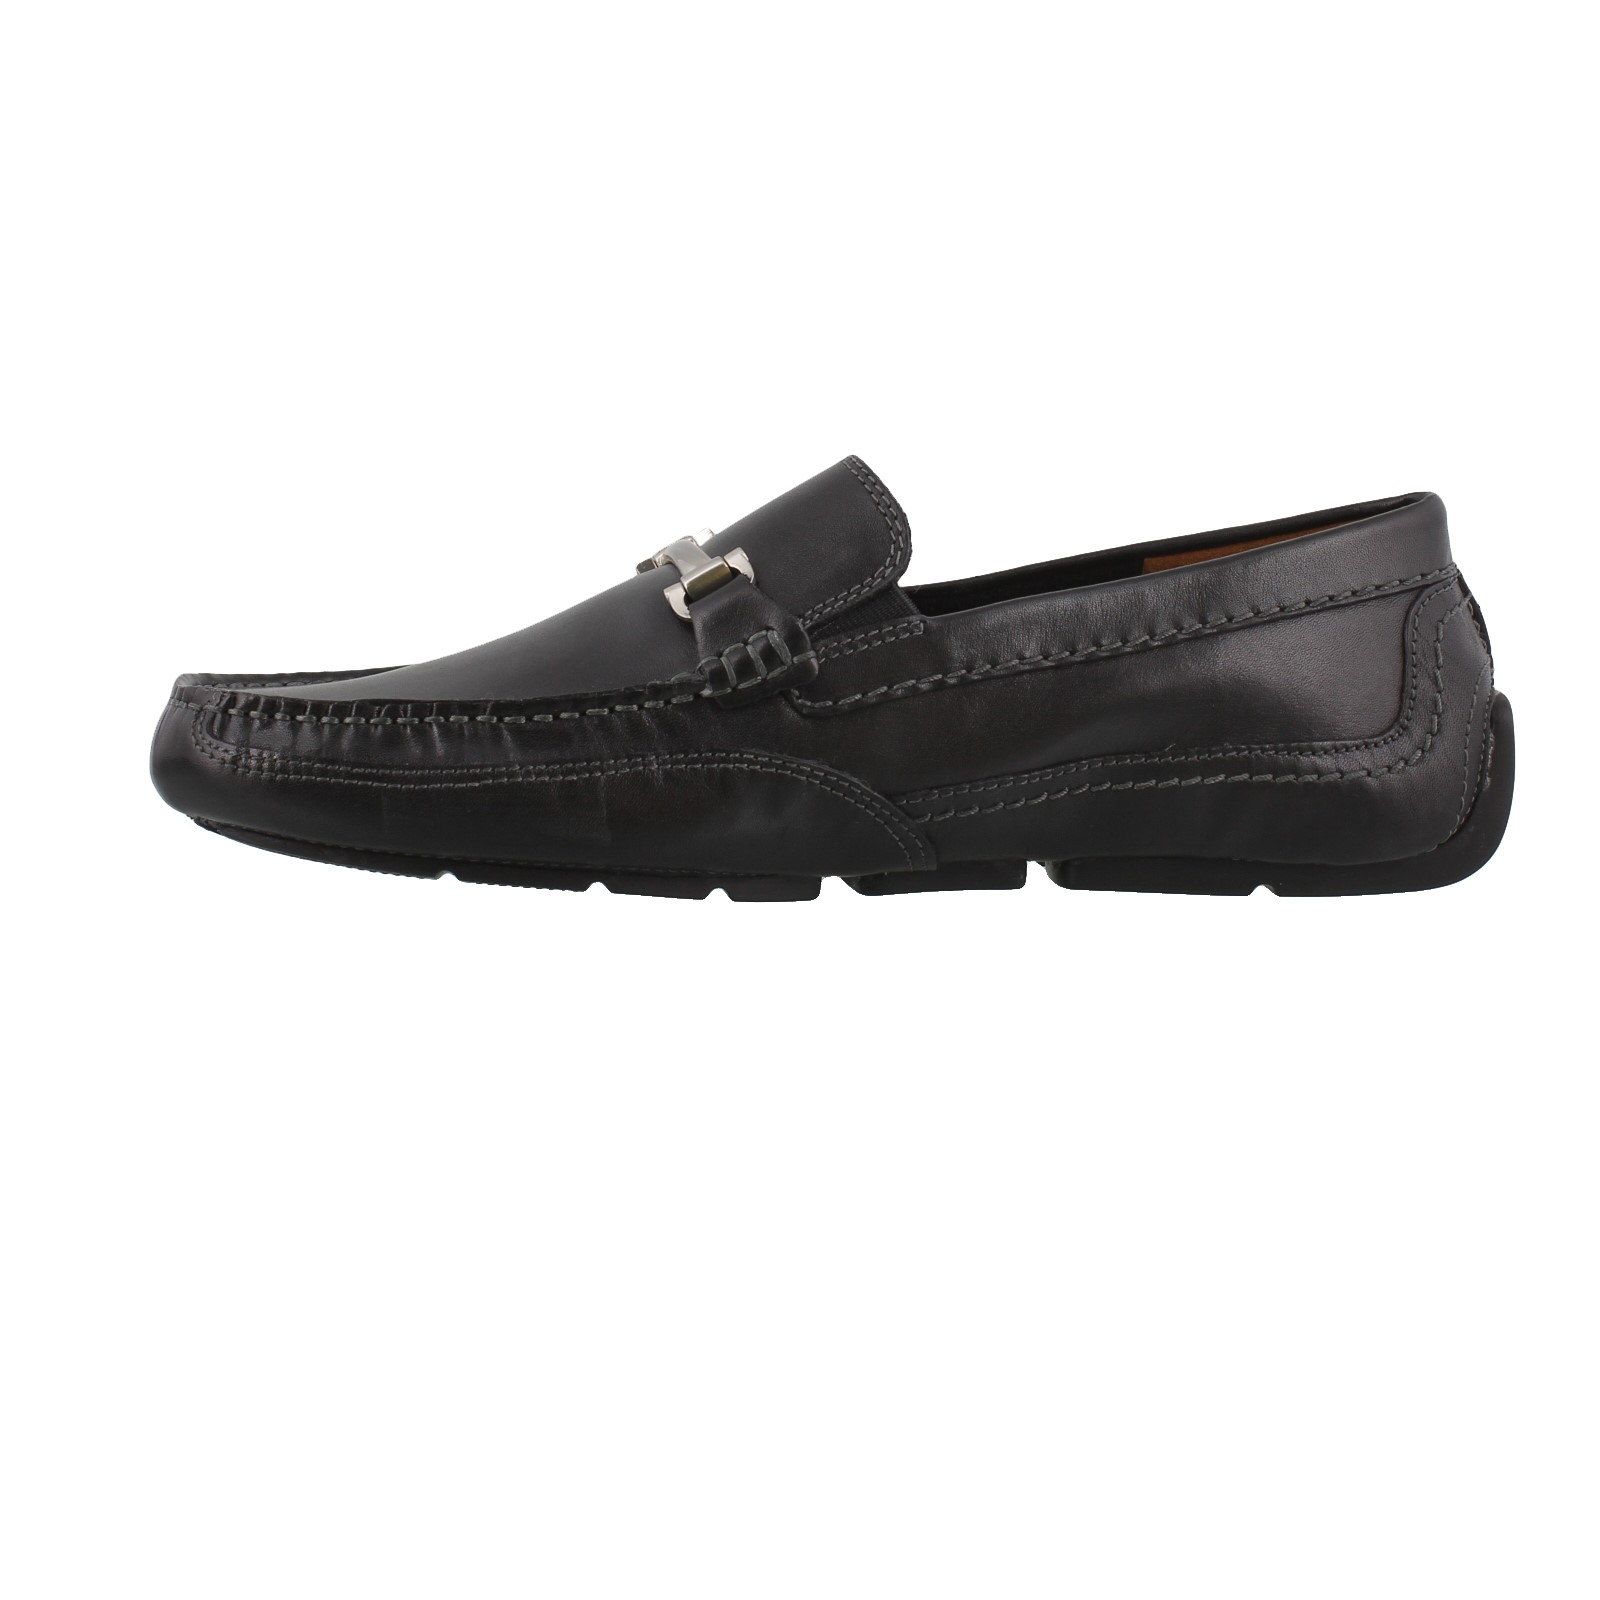 5c48141254 Men's CLARKS, ASHMONT BRACE SLIP ON LOAFERS | Peltz Shoes